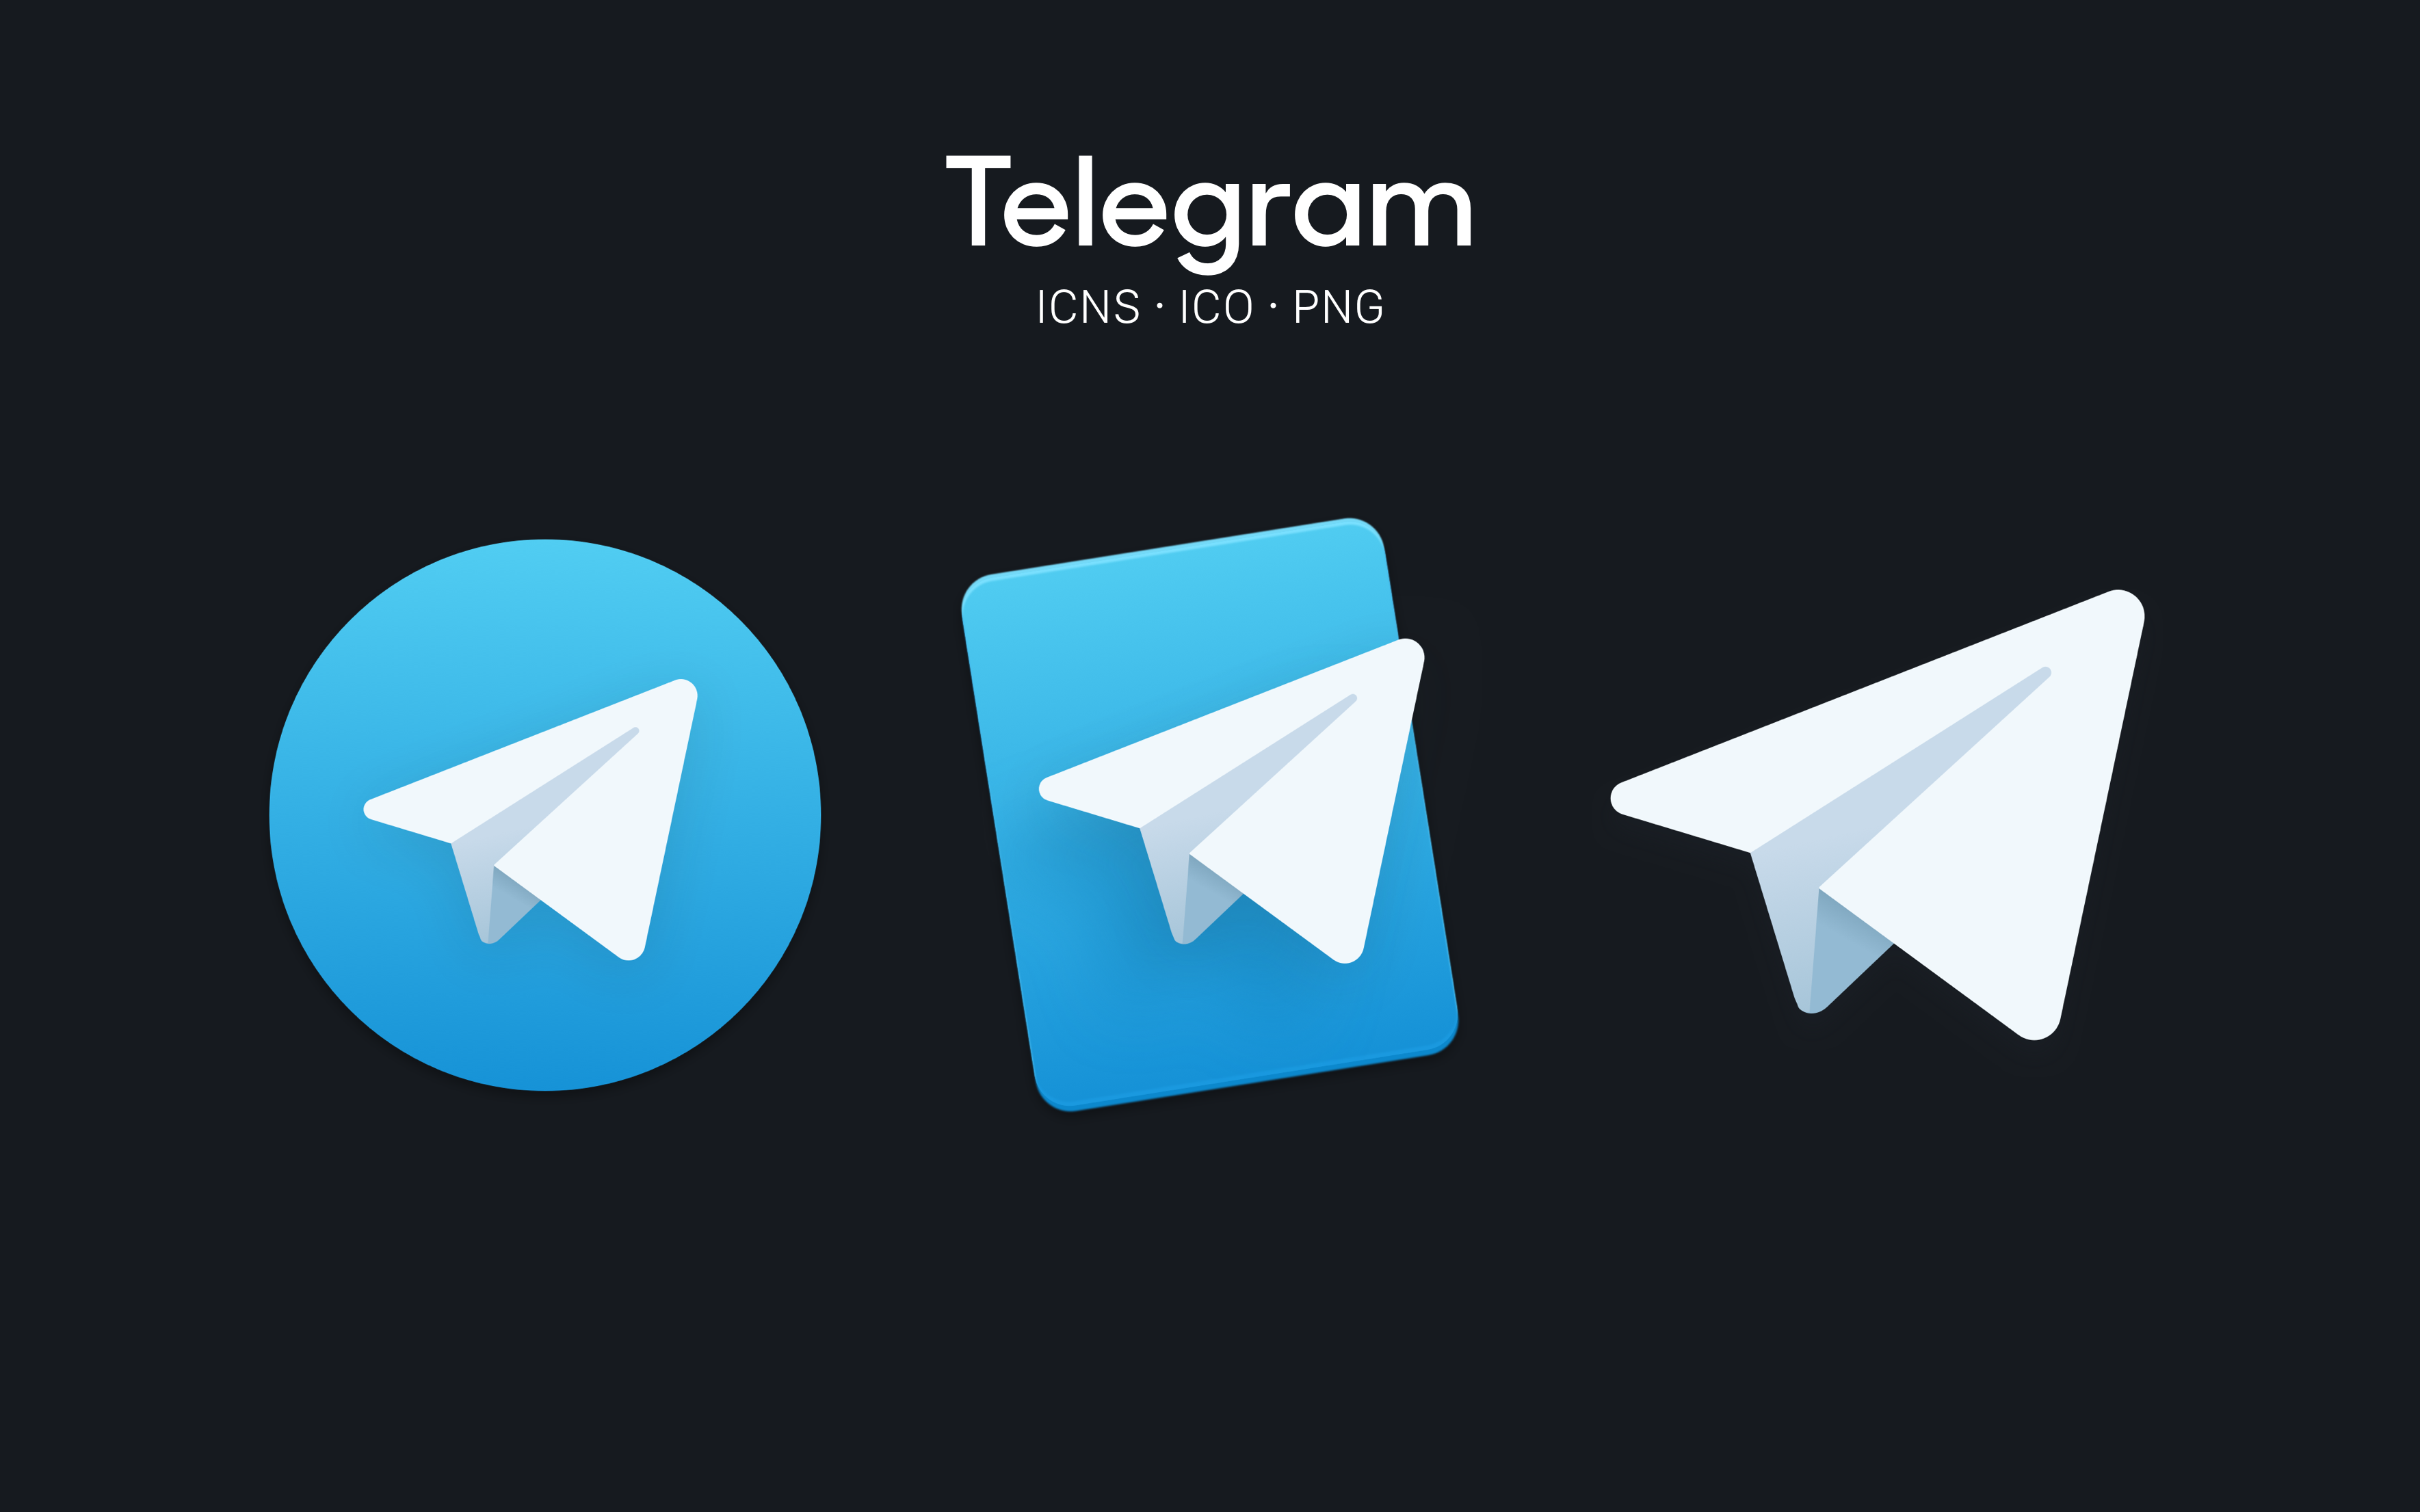 How To Download telegram For Pc Windows 7/8//10 And Mac For Free